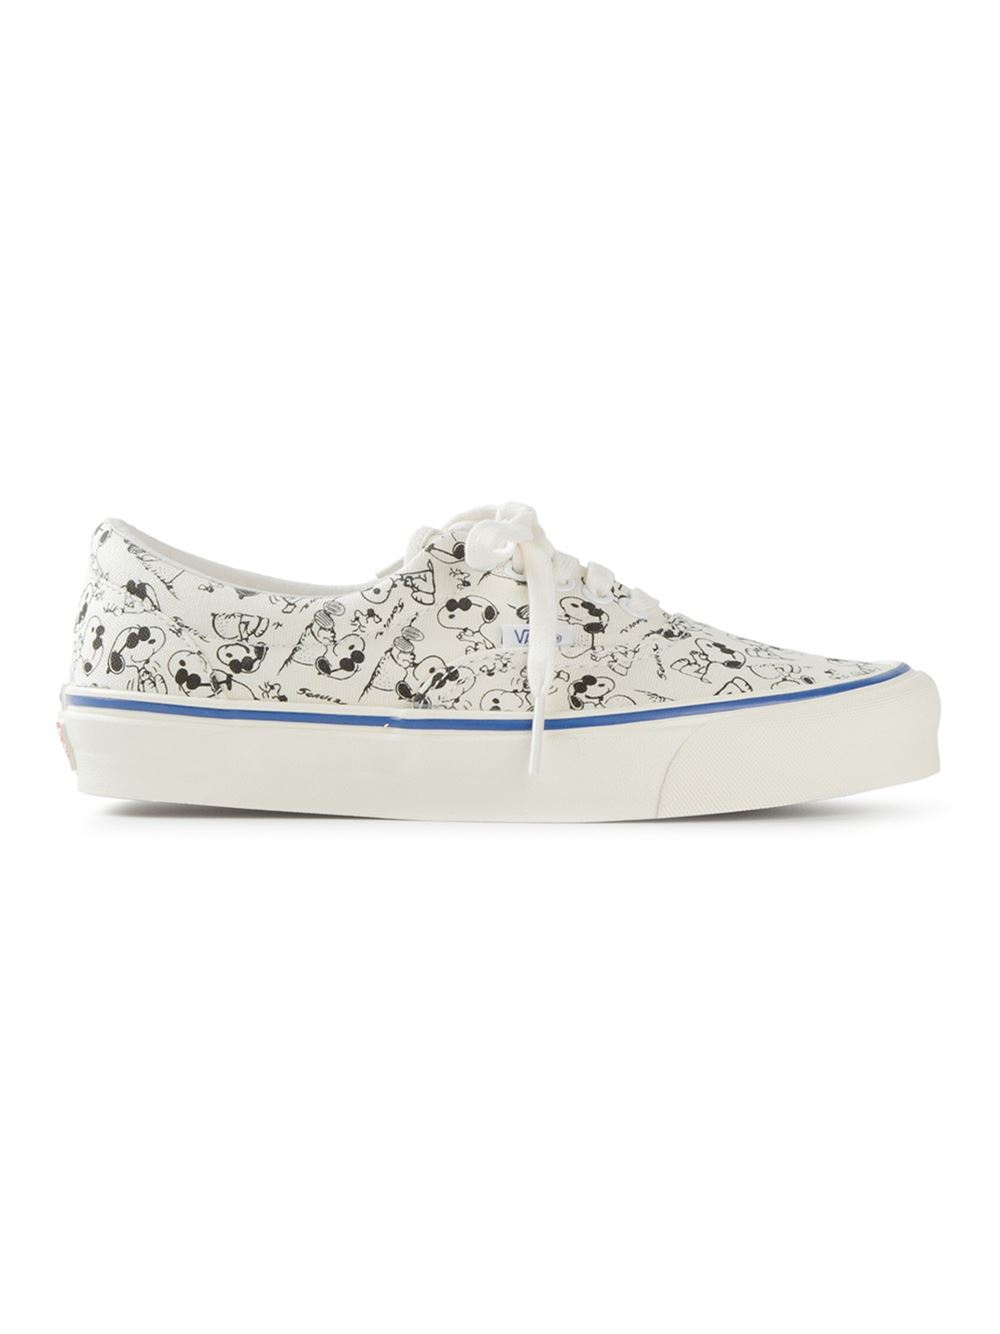 327b5d3329 Lyst - Vans  Snoopy  Sneakers in White for Men